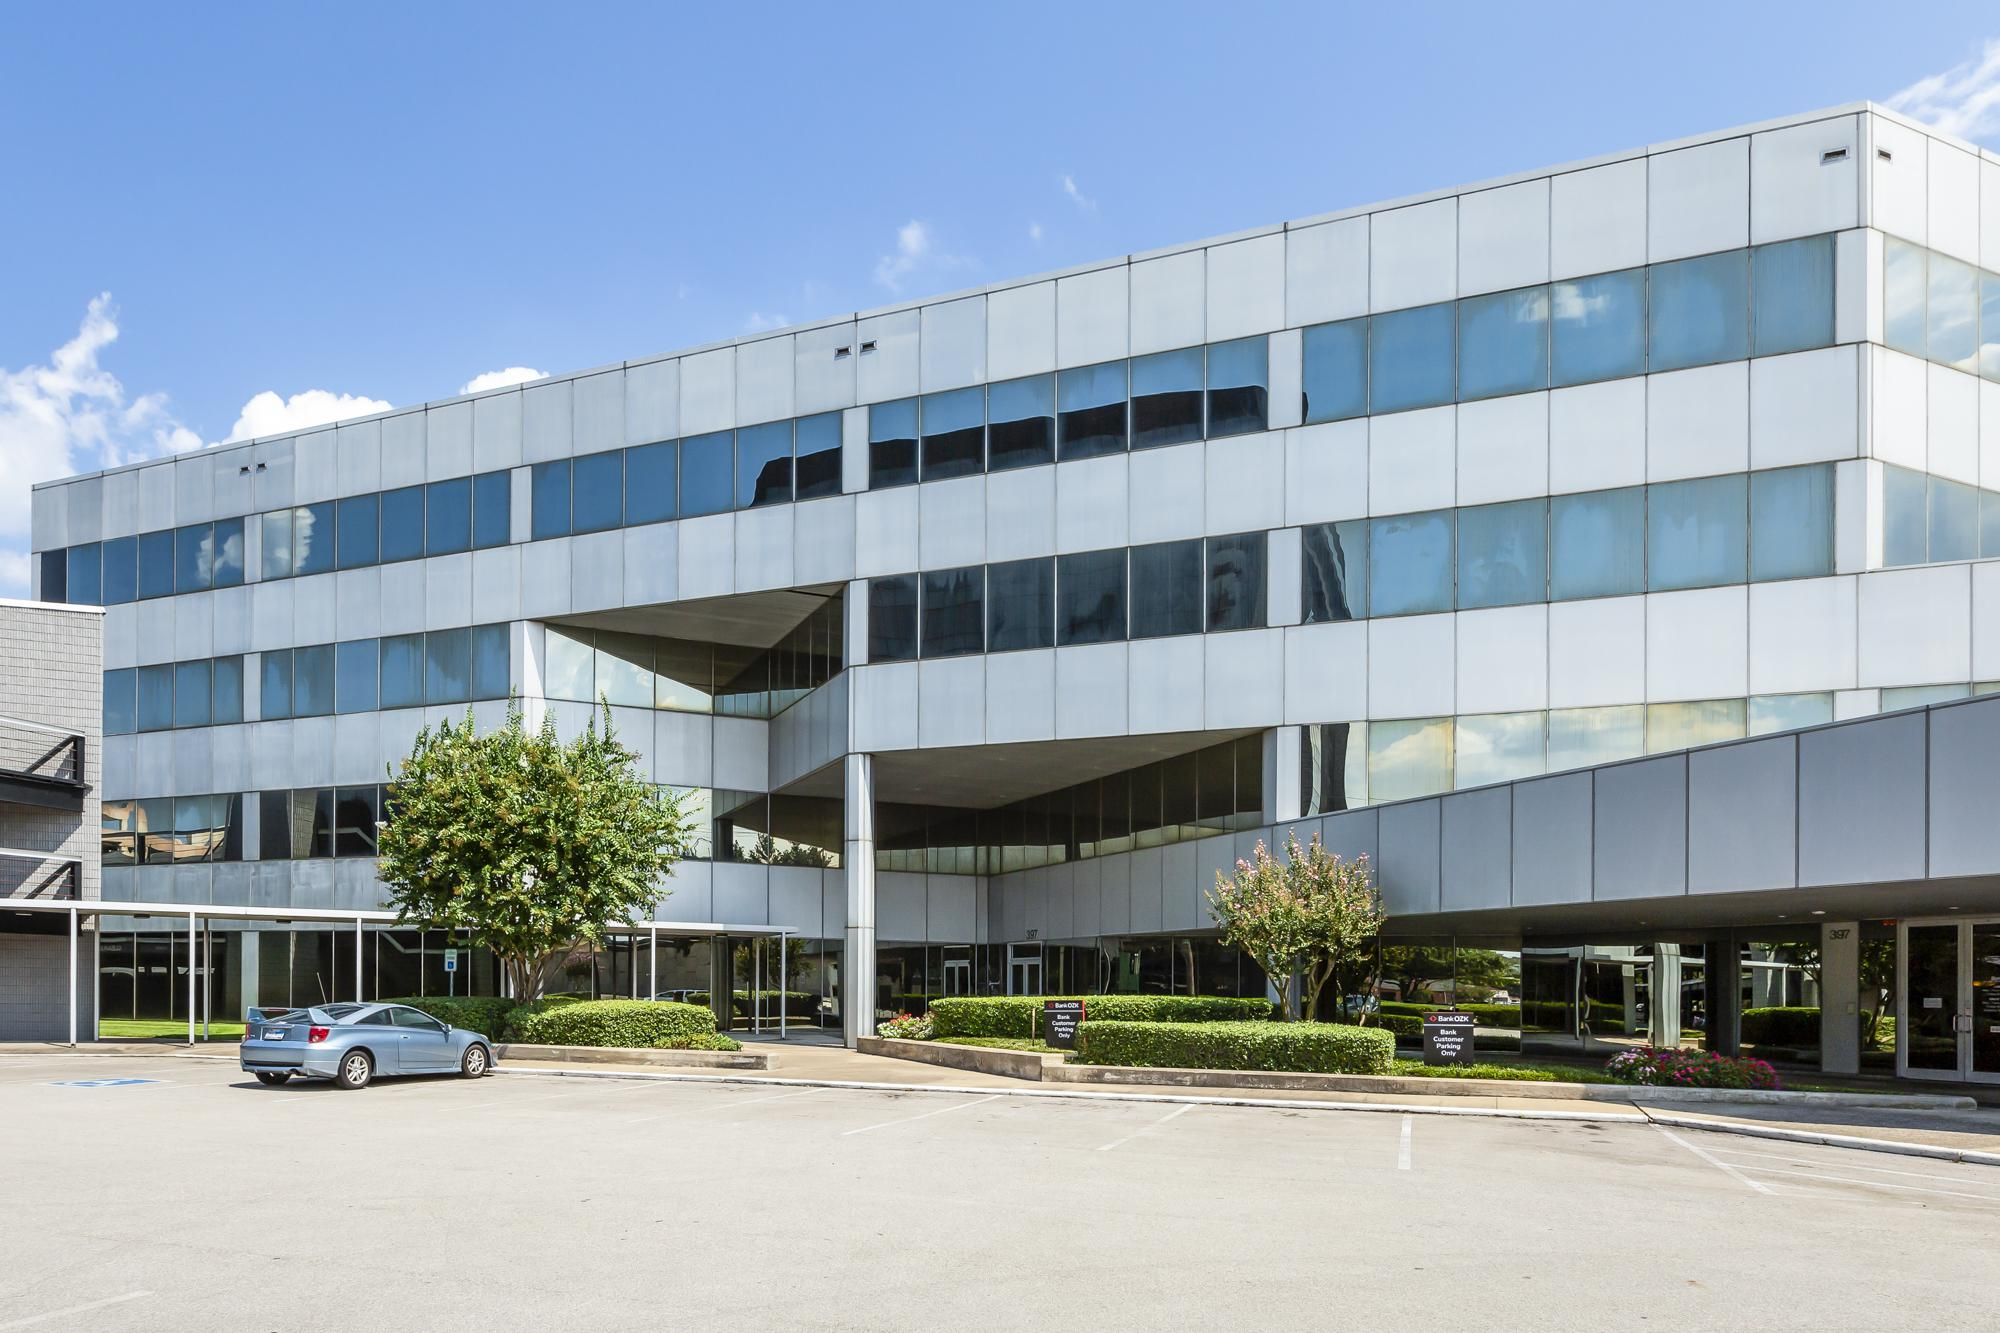 Real estate transactions: Greenspoint office building changes hands